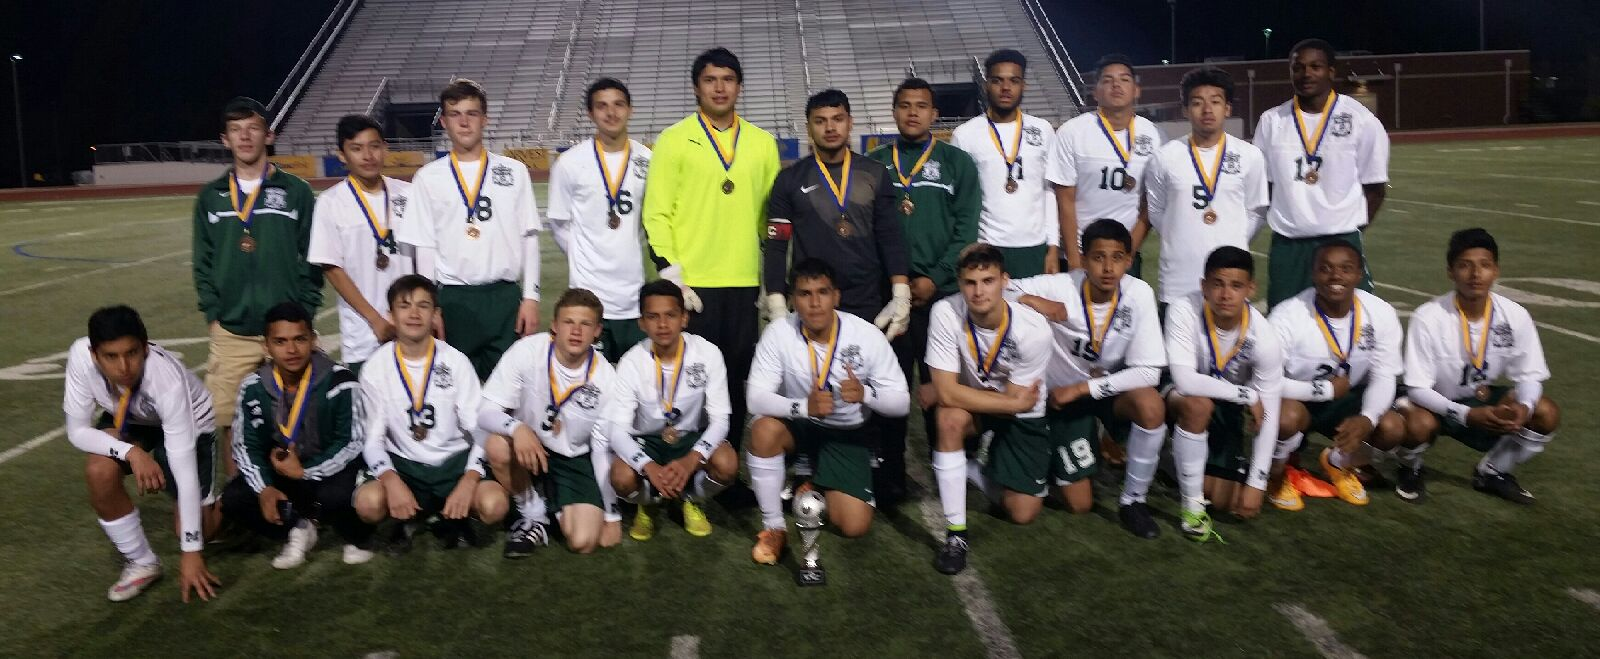 how to become a high school soccer coach